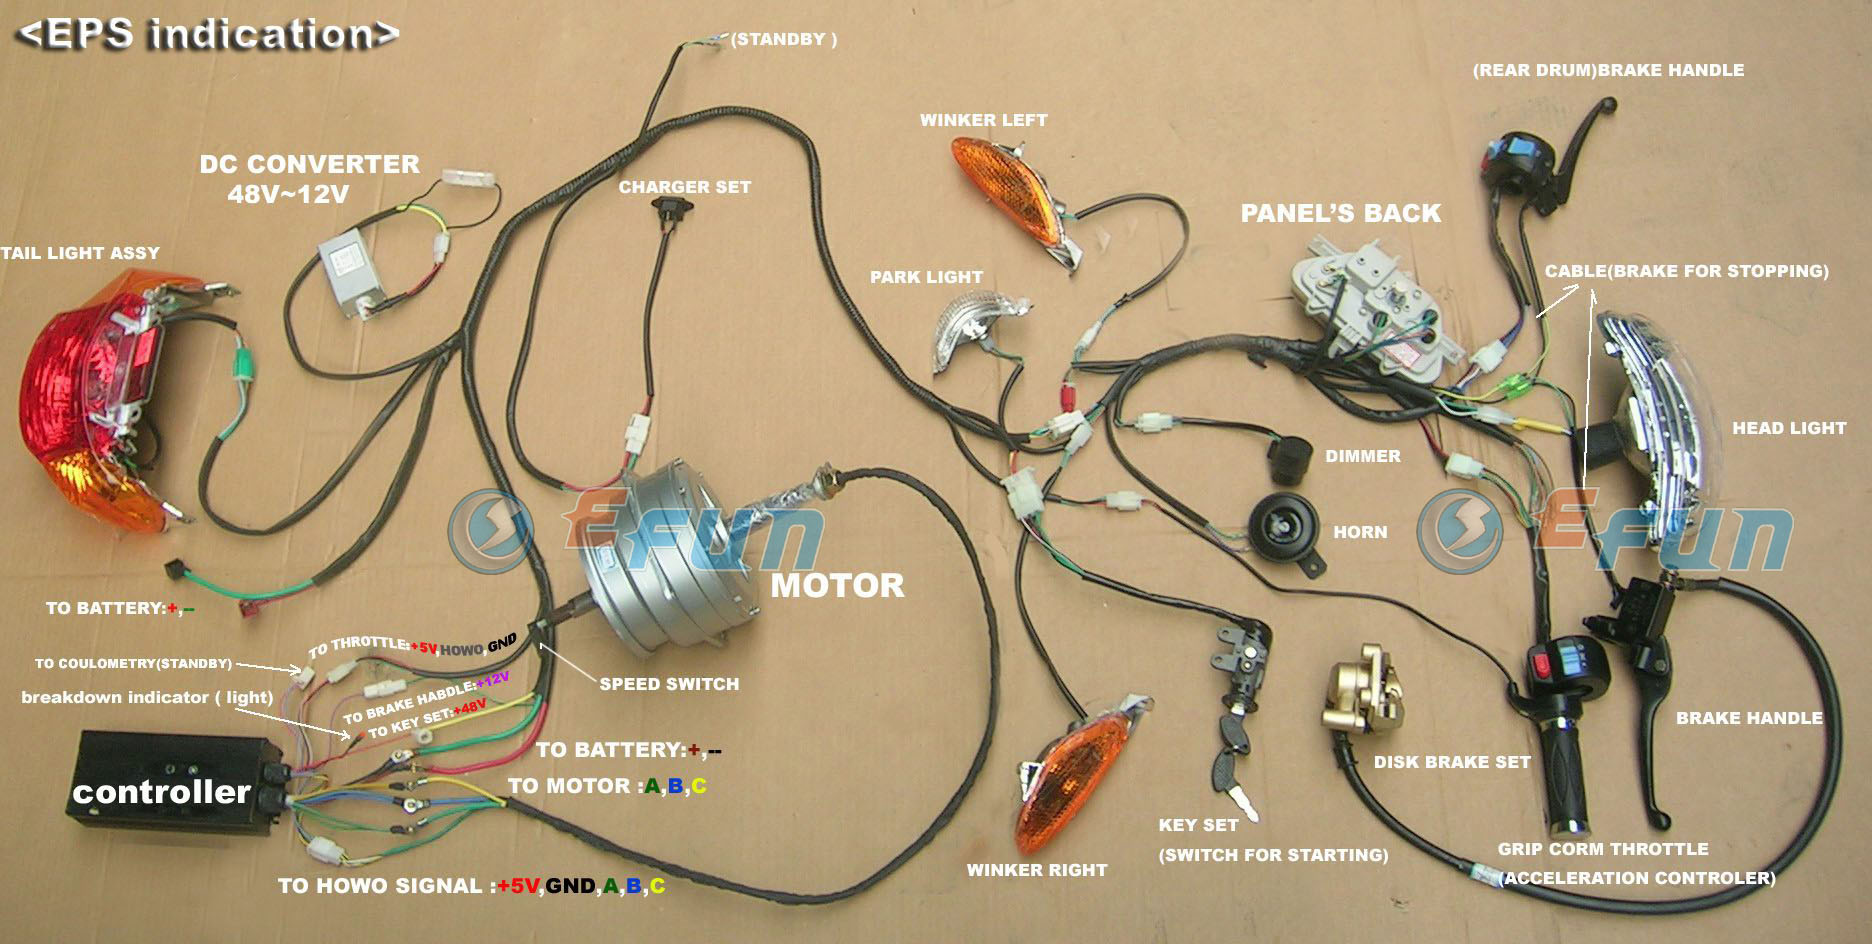 Index Of Files Vehicles Moped Basic Motorcycle Wiring Diagram Pictures Wire Efun 1500w2000w